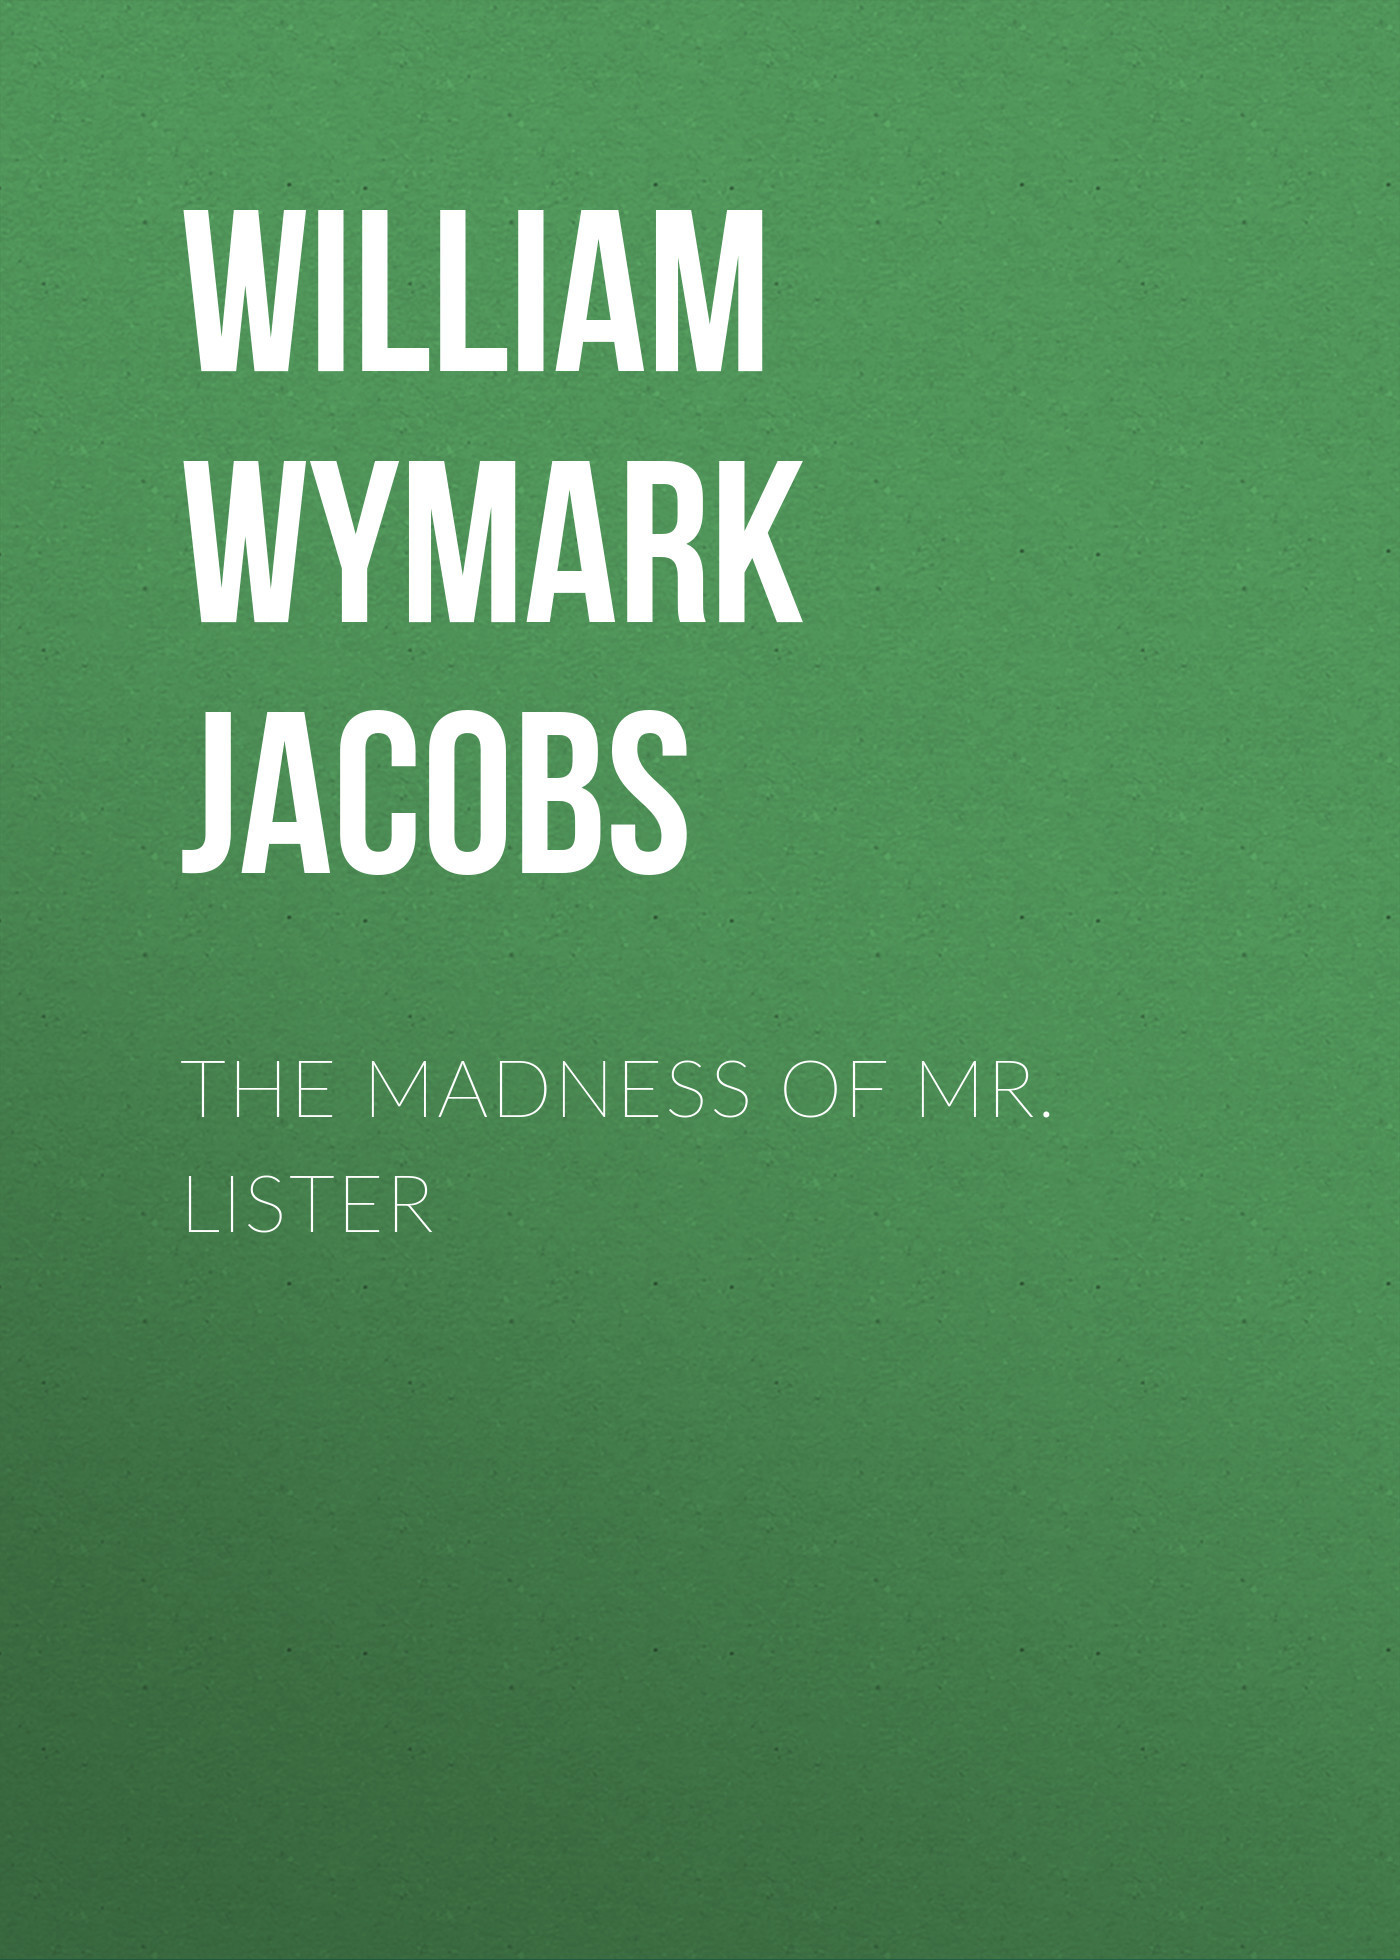 William Wymark Jacobs The Madness of Mr. Lister